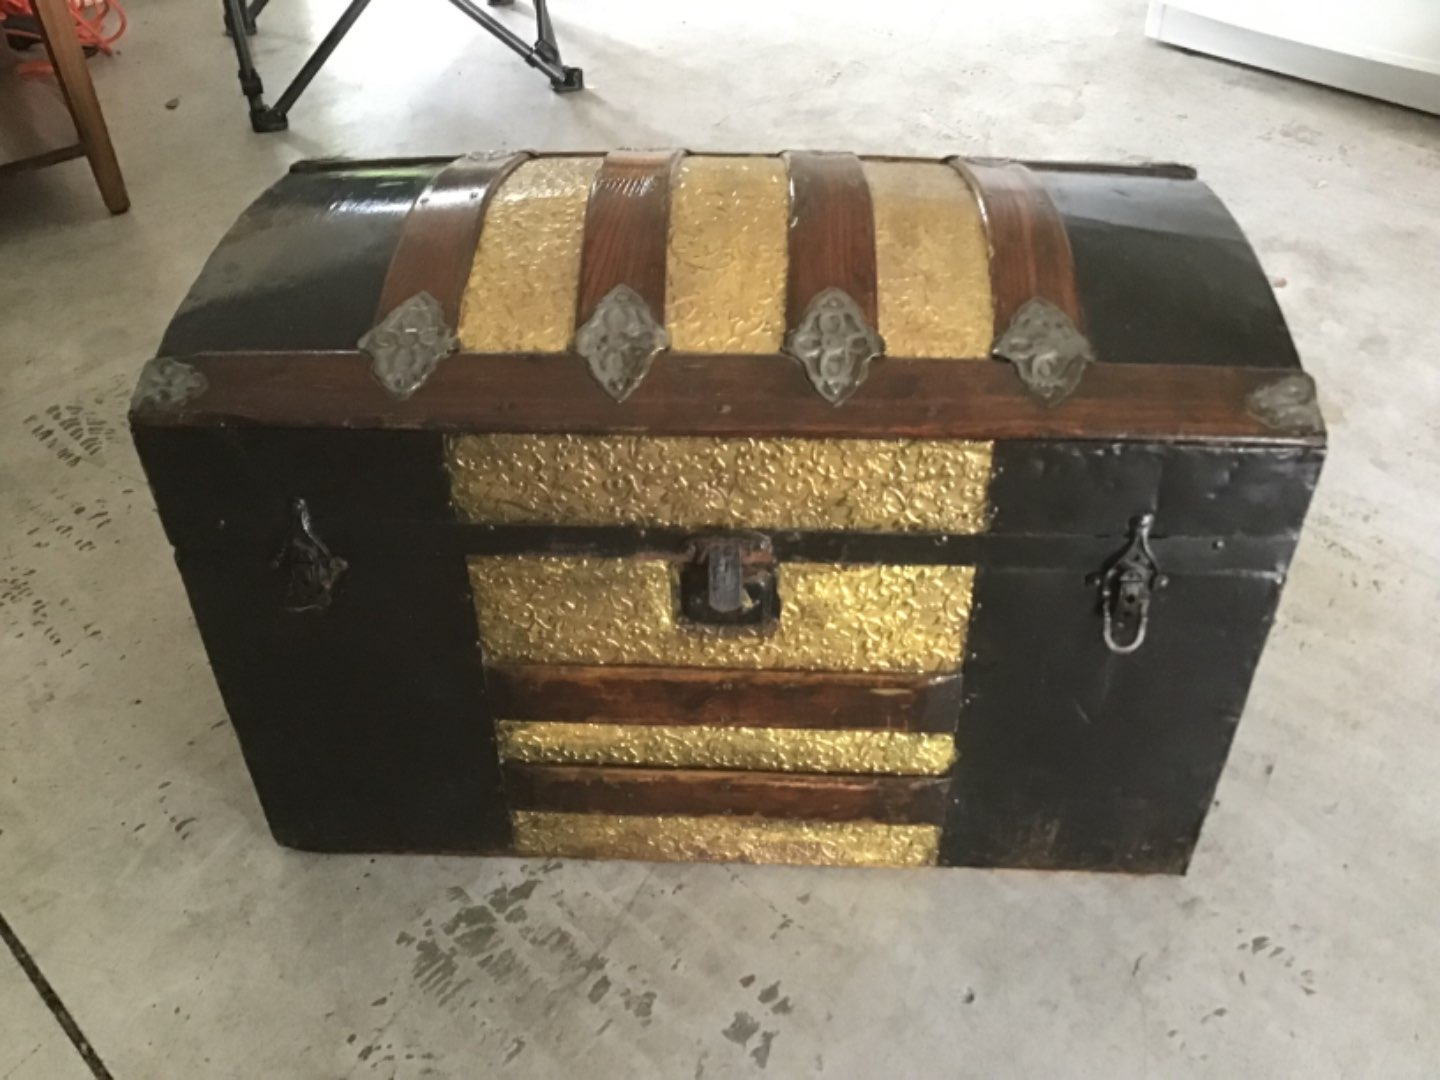 Lot # 376 Beautiful Old Steamer Trunk in VG Condition Overall (missing handles as is typical)